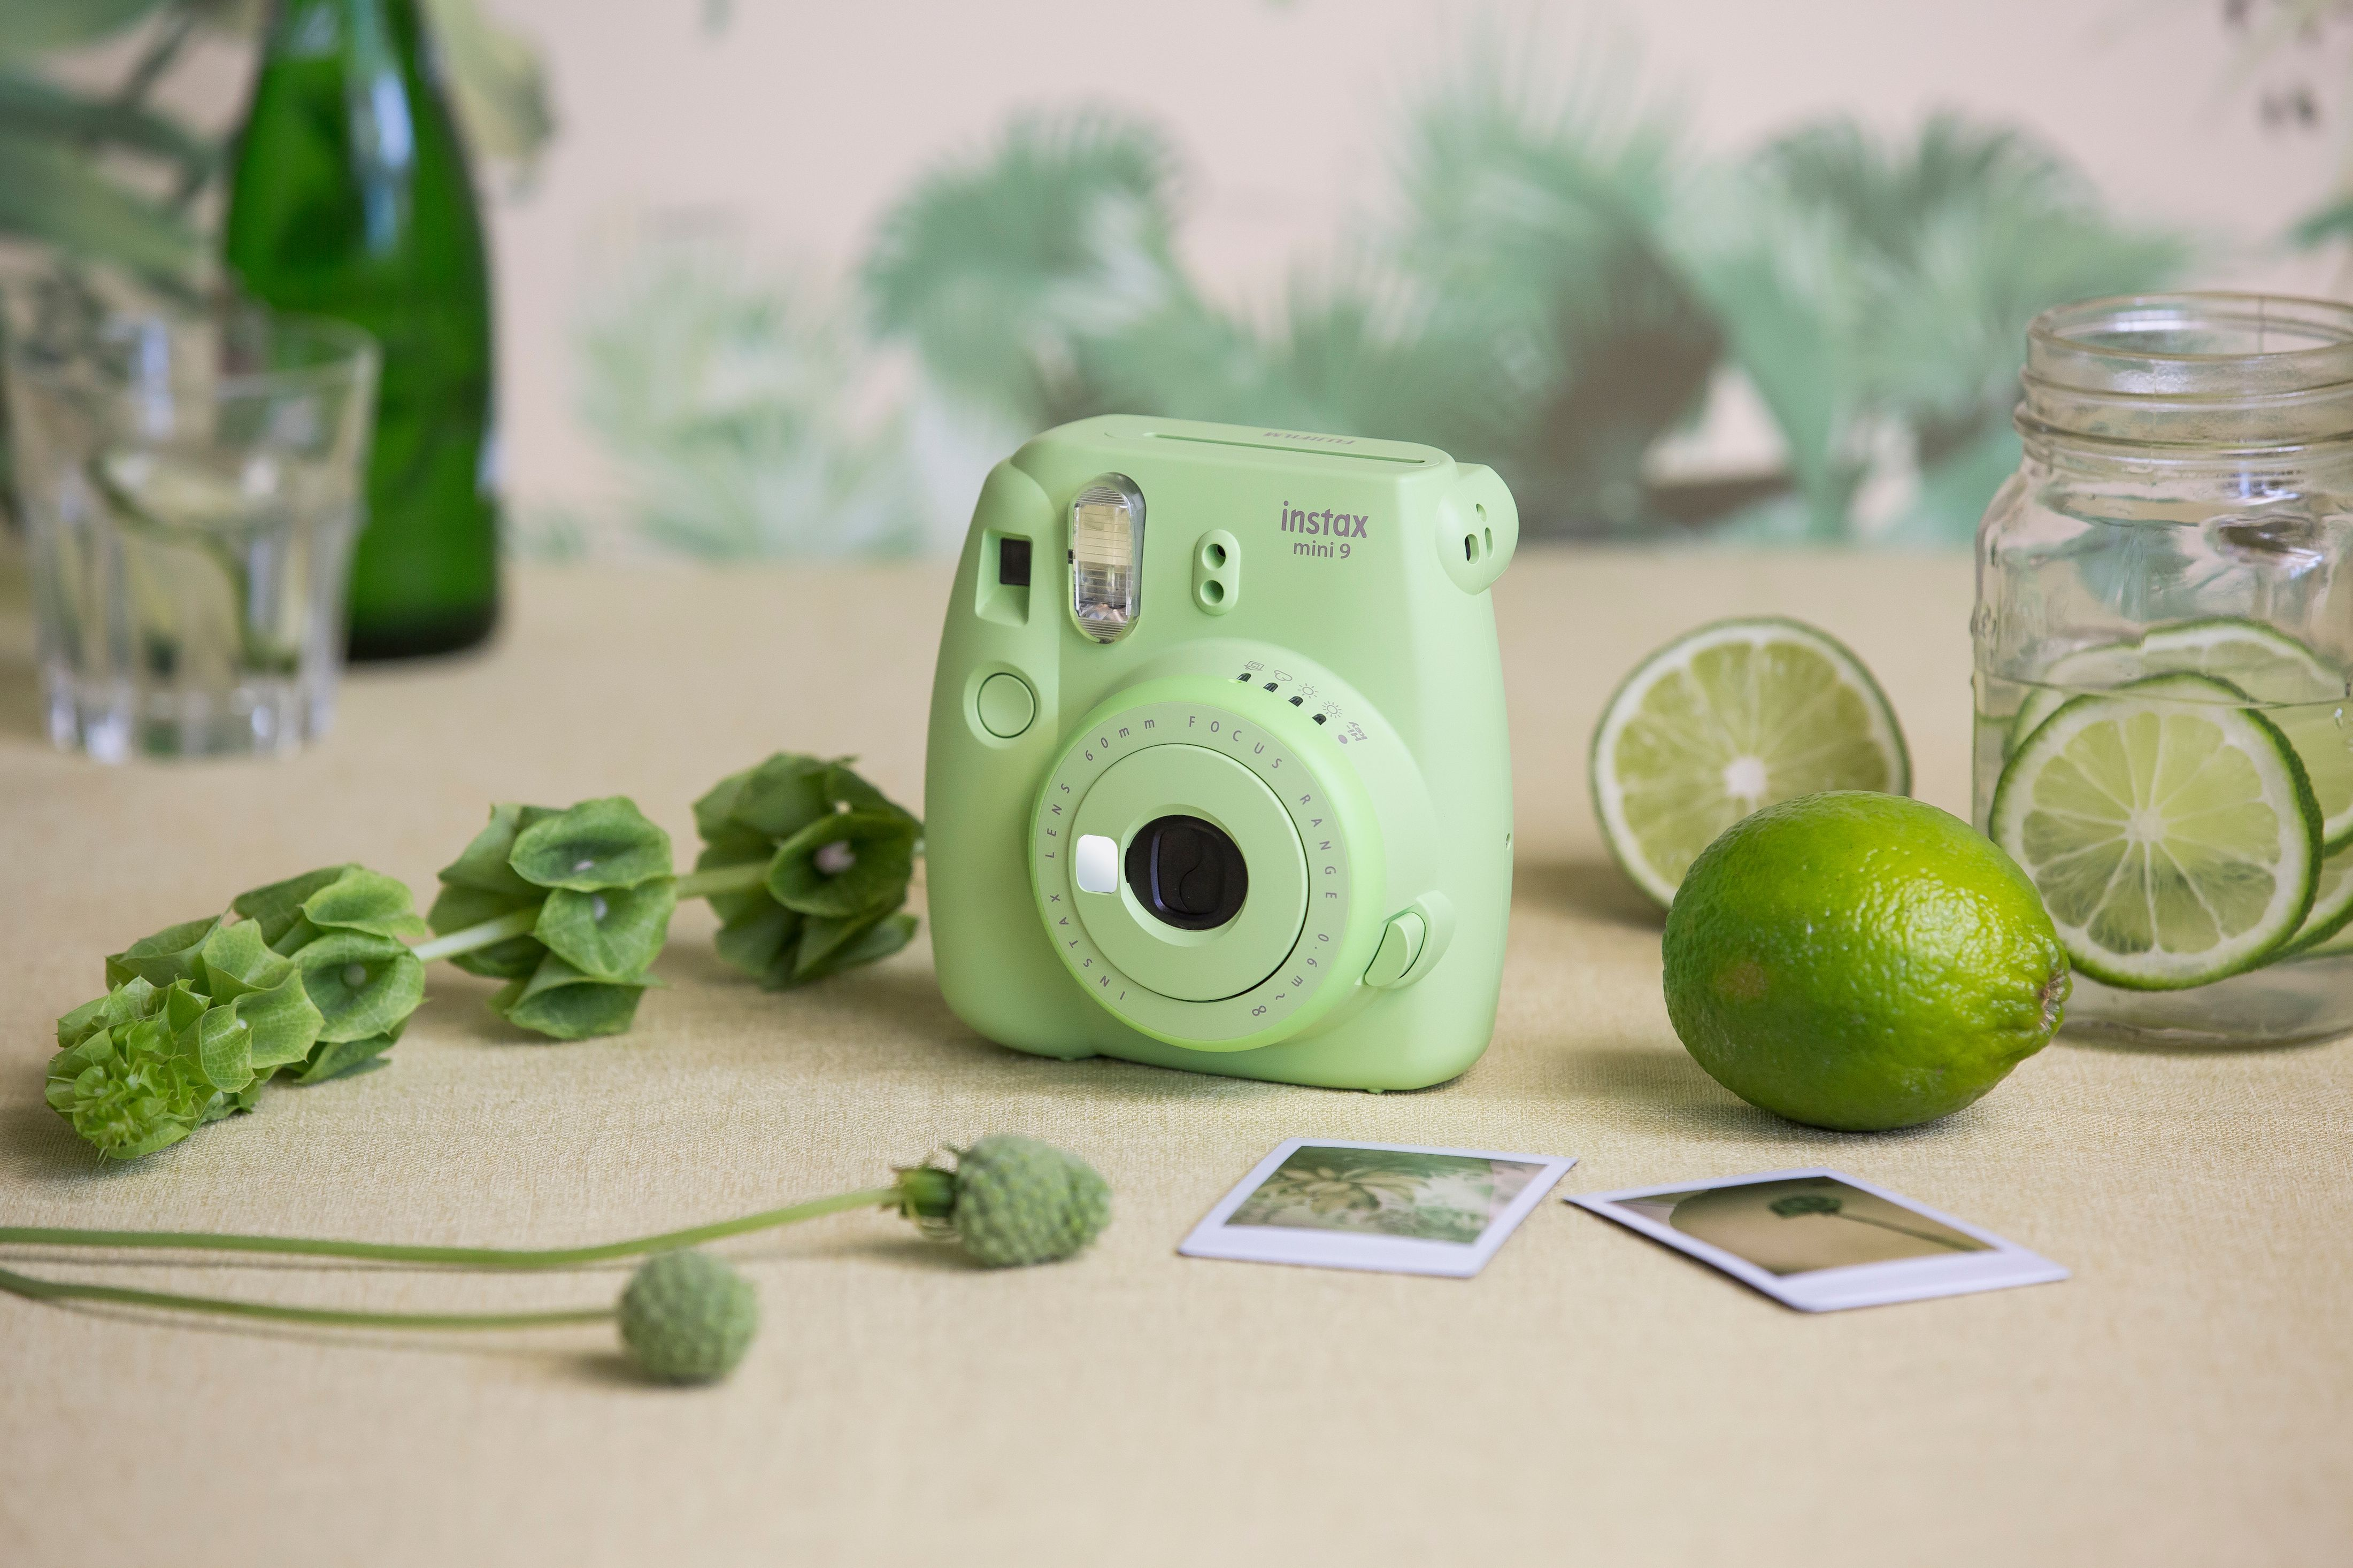 The new mini 9 in Lime Green Instax camera, Instax